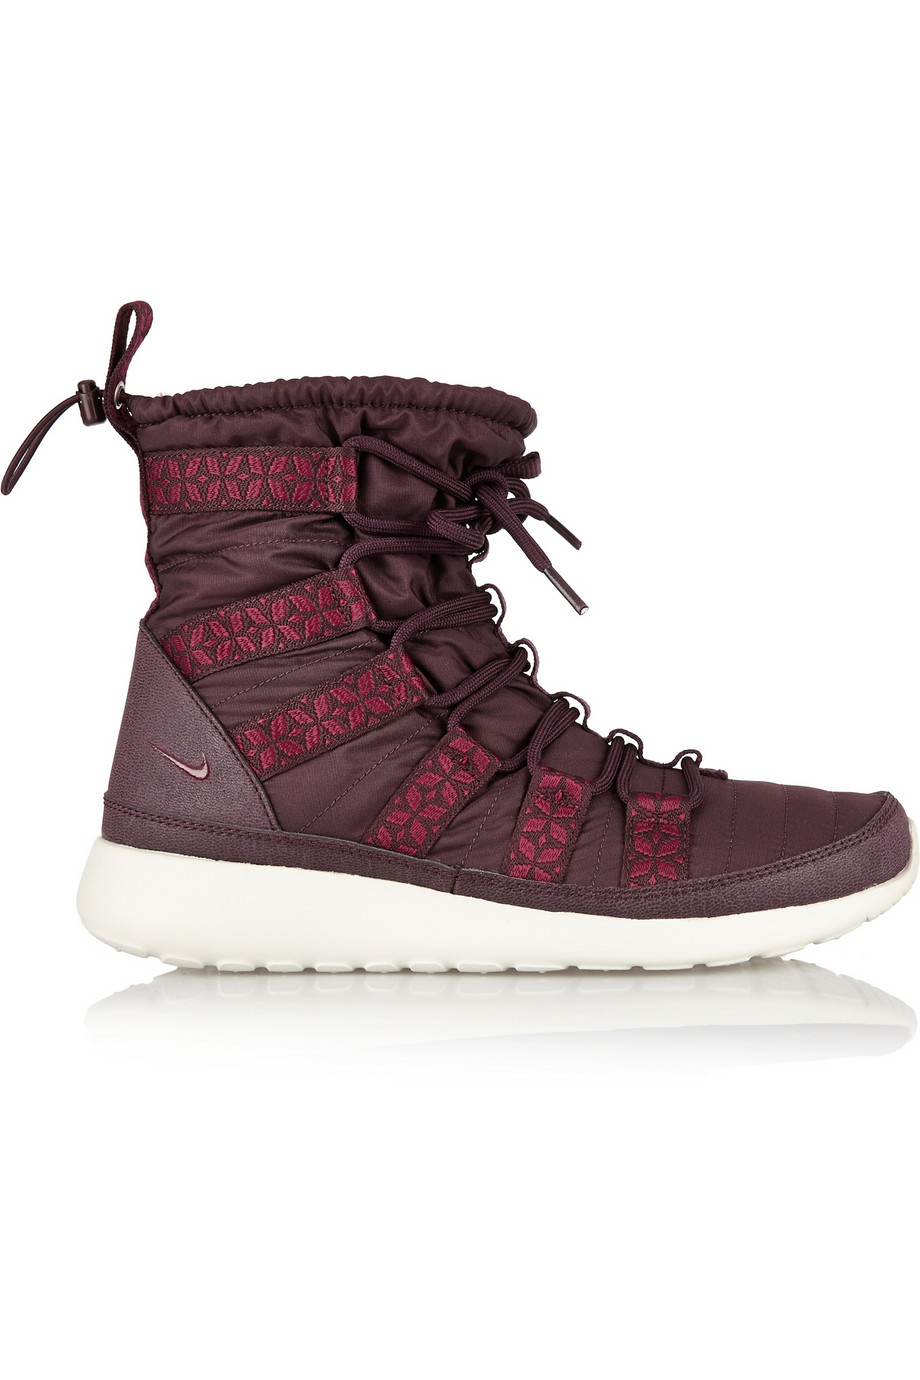 96e04b1f013c ... Suede Sneaker Boots ZX1219 Lyst - Nike Roshe Run Hi Shell Sneaker-Style  Boots in Red ...